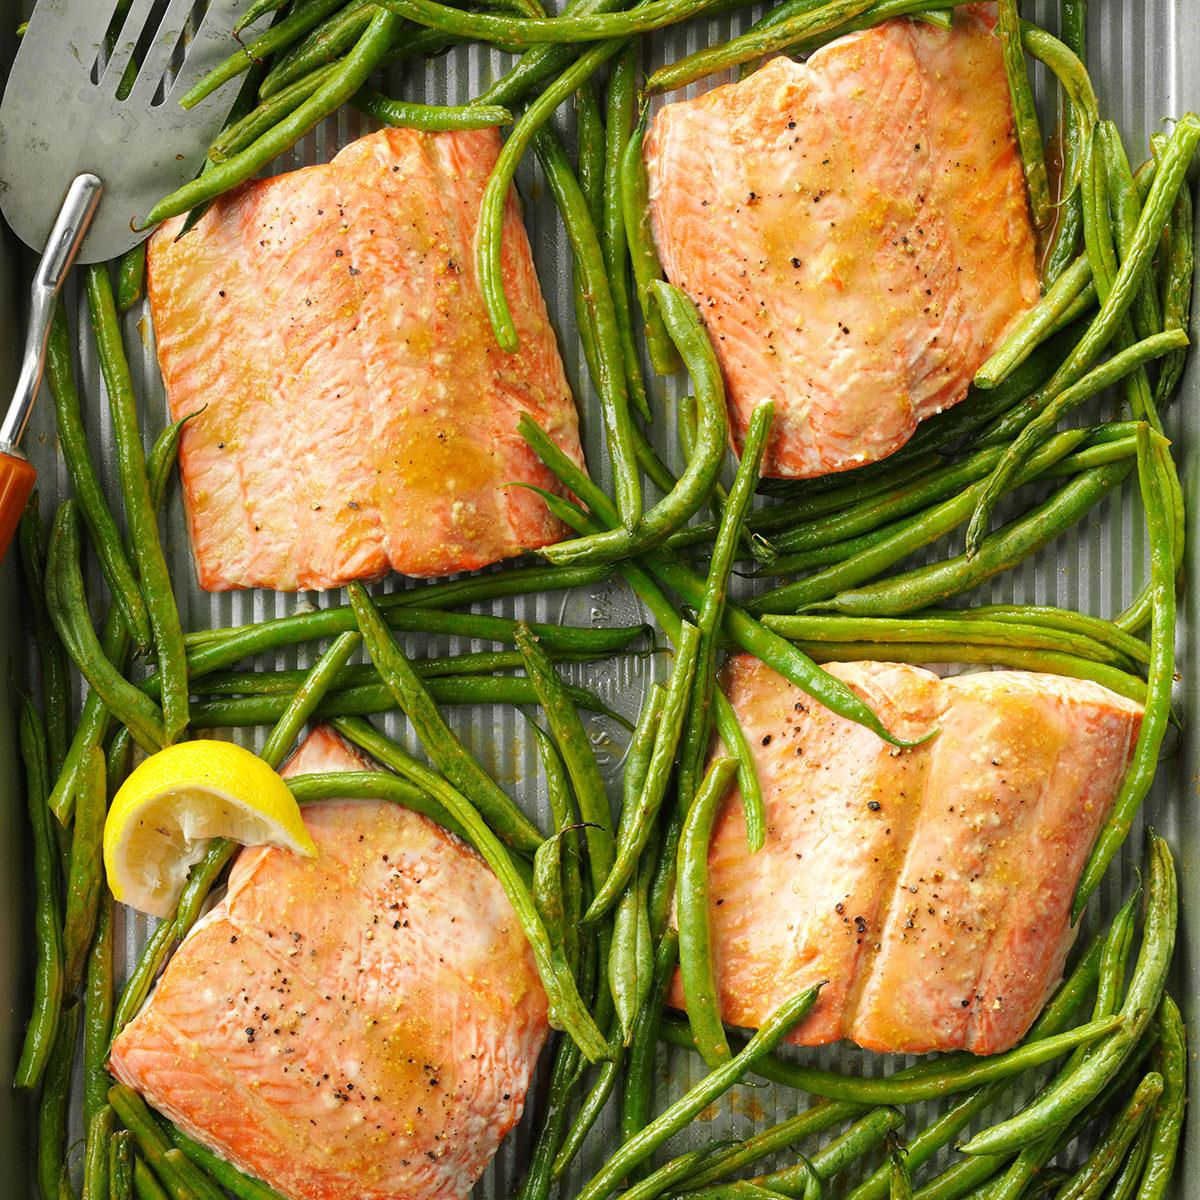 Foil-Cooked Salmon Over Pan-Cooked Green Beans